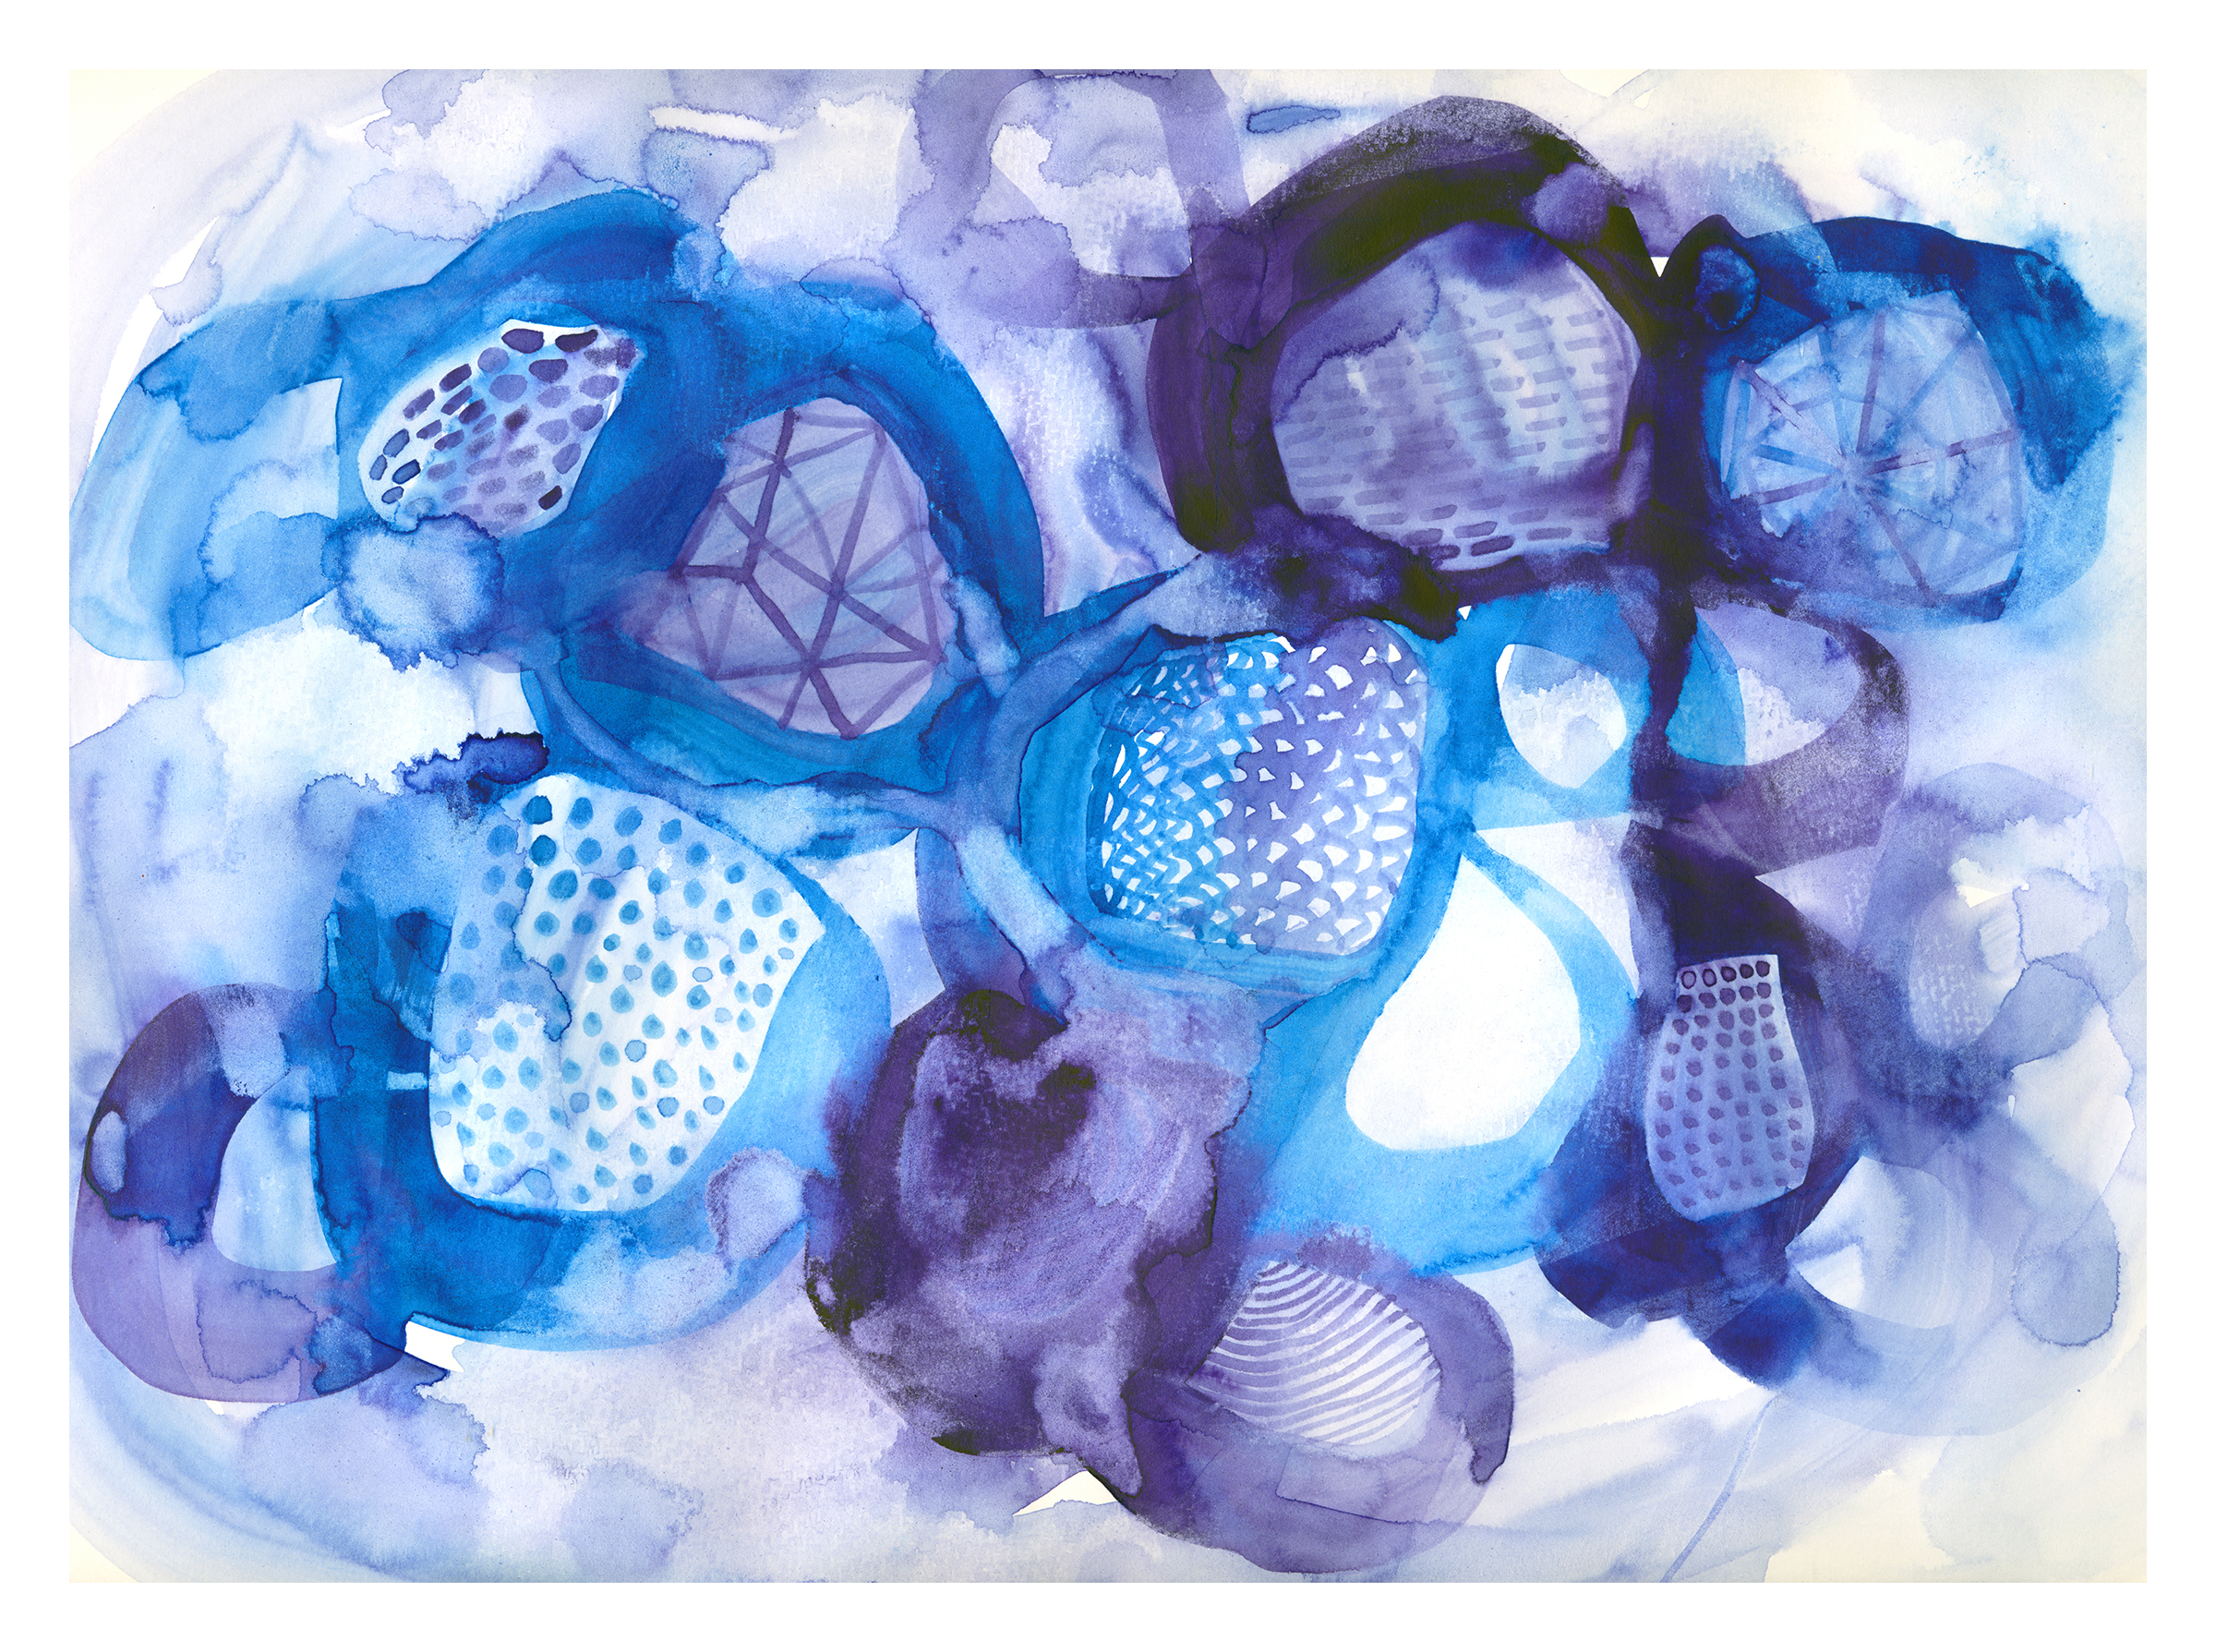 Watercolor_Abstract_Into the Sea_Minted_HR.jpg